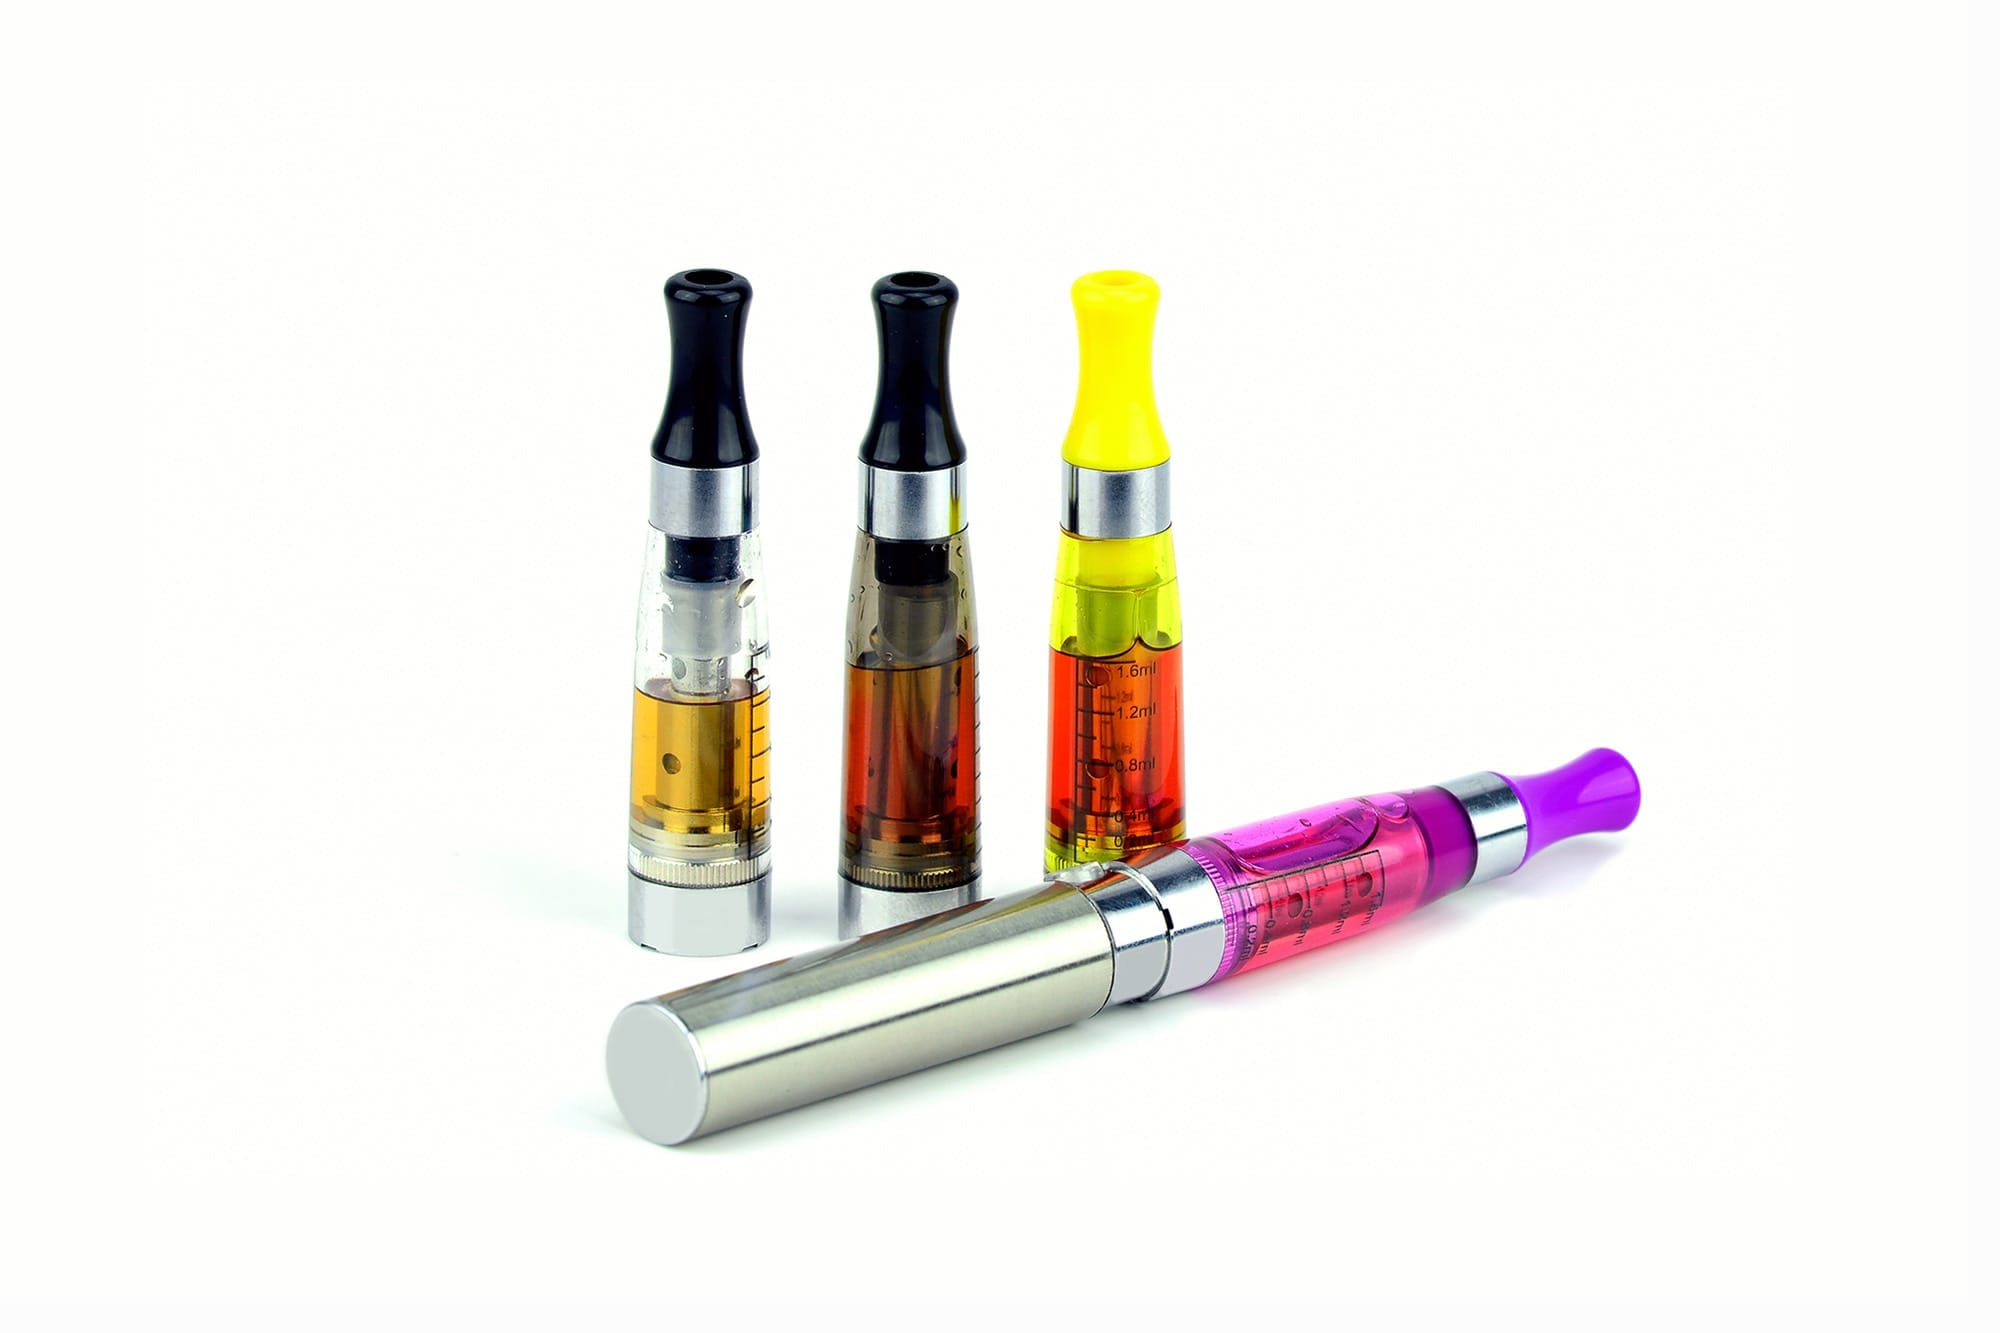 FDA Rejects Marketing Approval for 55,000 Flavored Vaping Products